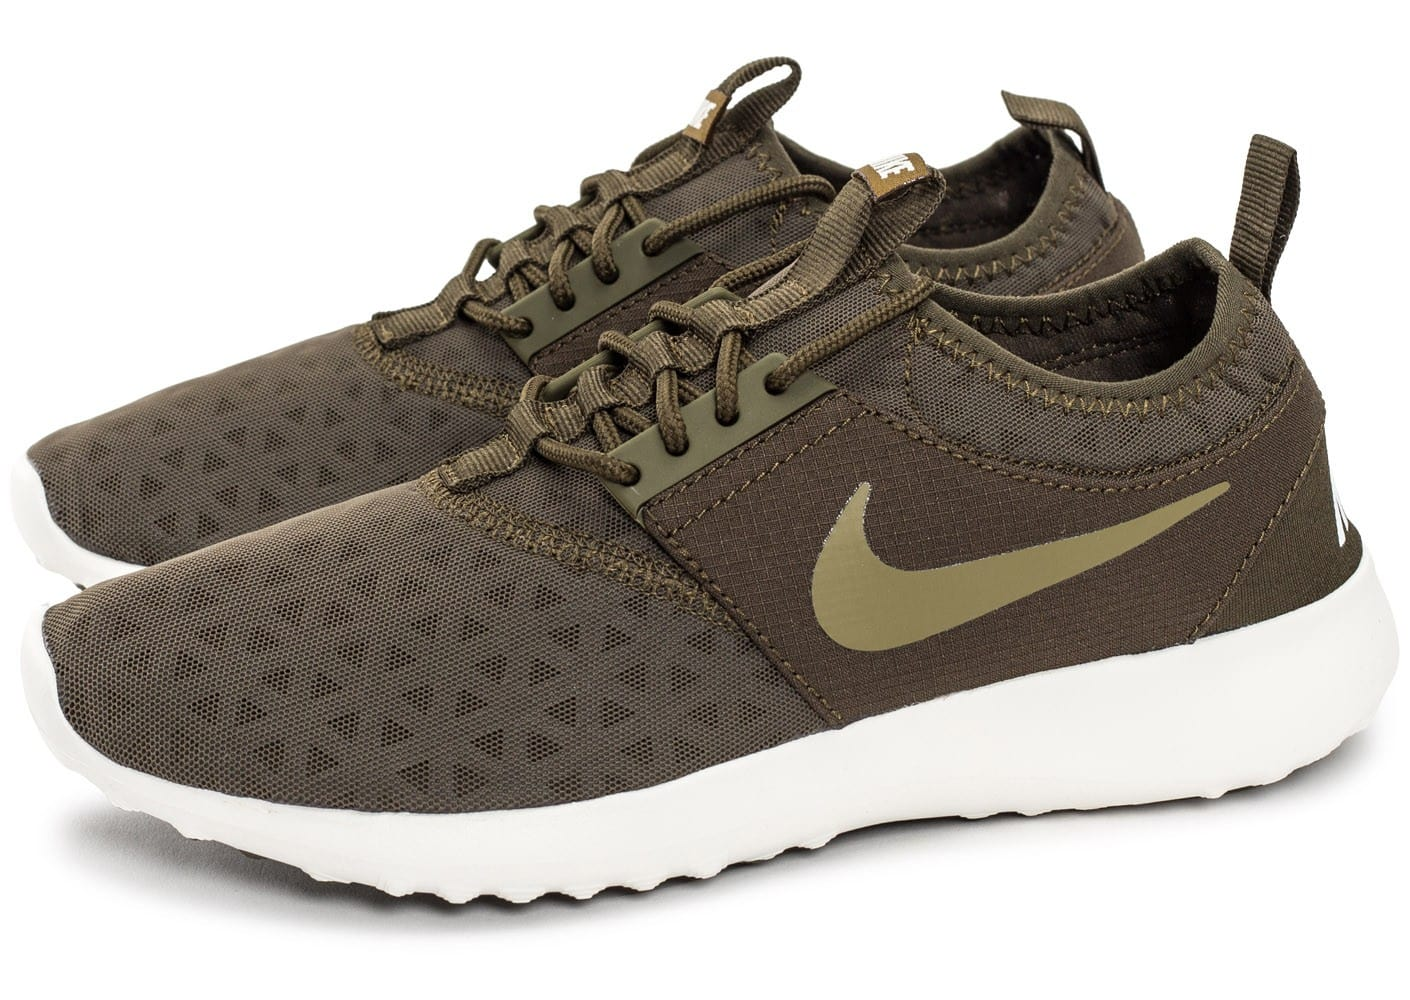 nike juvenate olive chaussures chaussures chausport. Black Bedroom Furniture Sets. Home Design Ideas